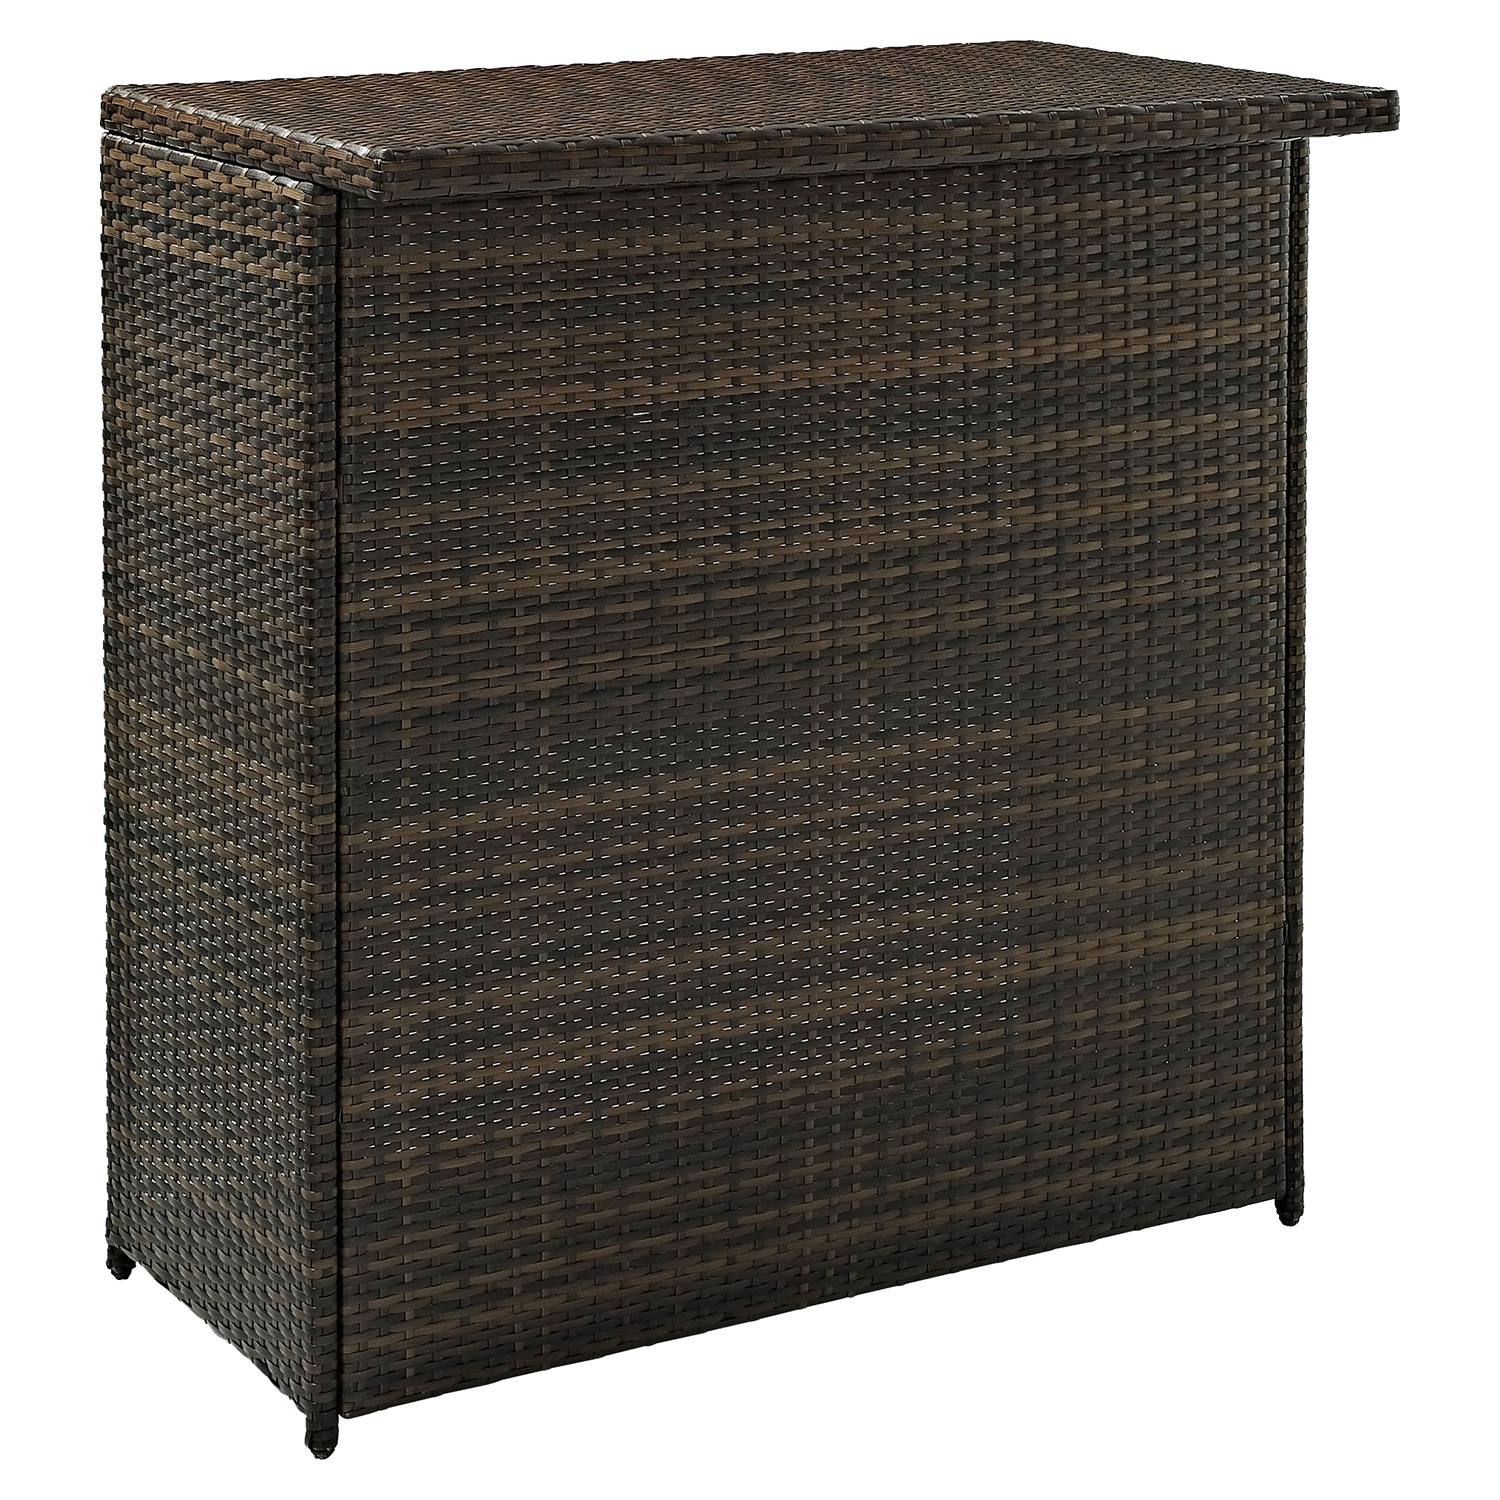 Palm Harbor 3-Piece Outdoor Wicker Bar Set - Dark Brown - CROS-KO70009BR